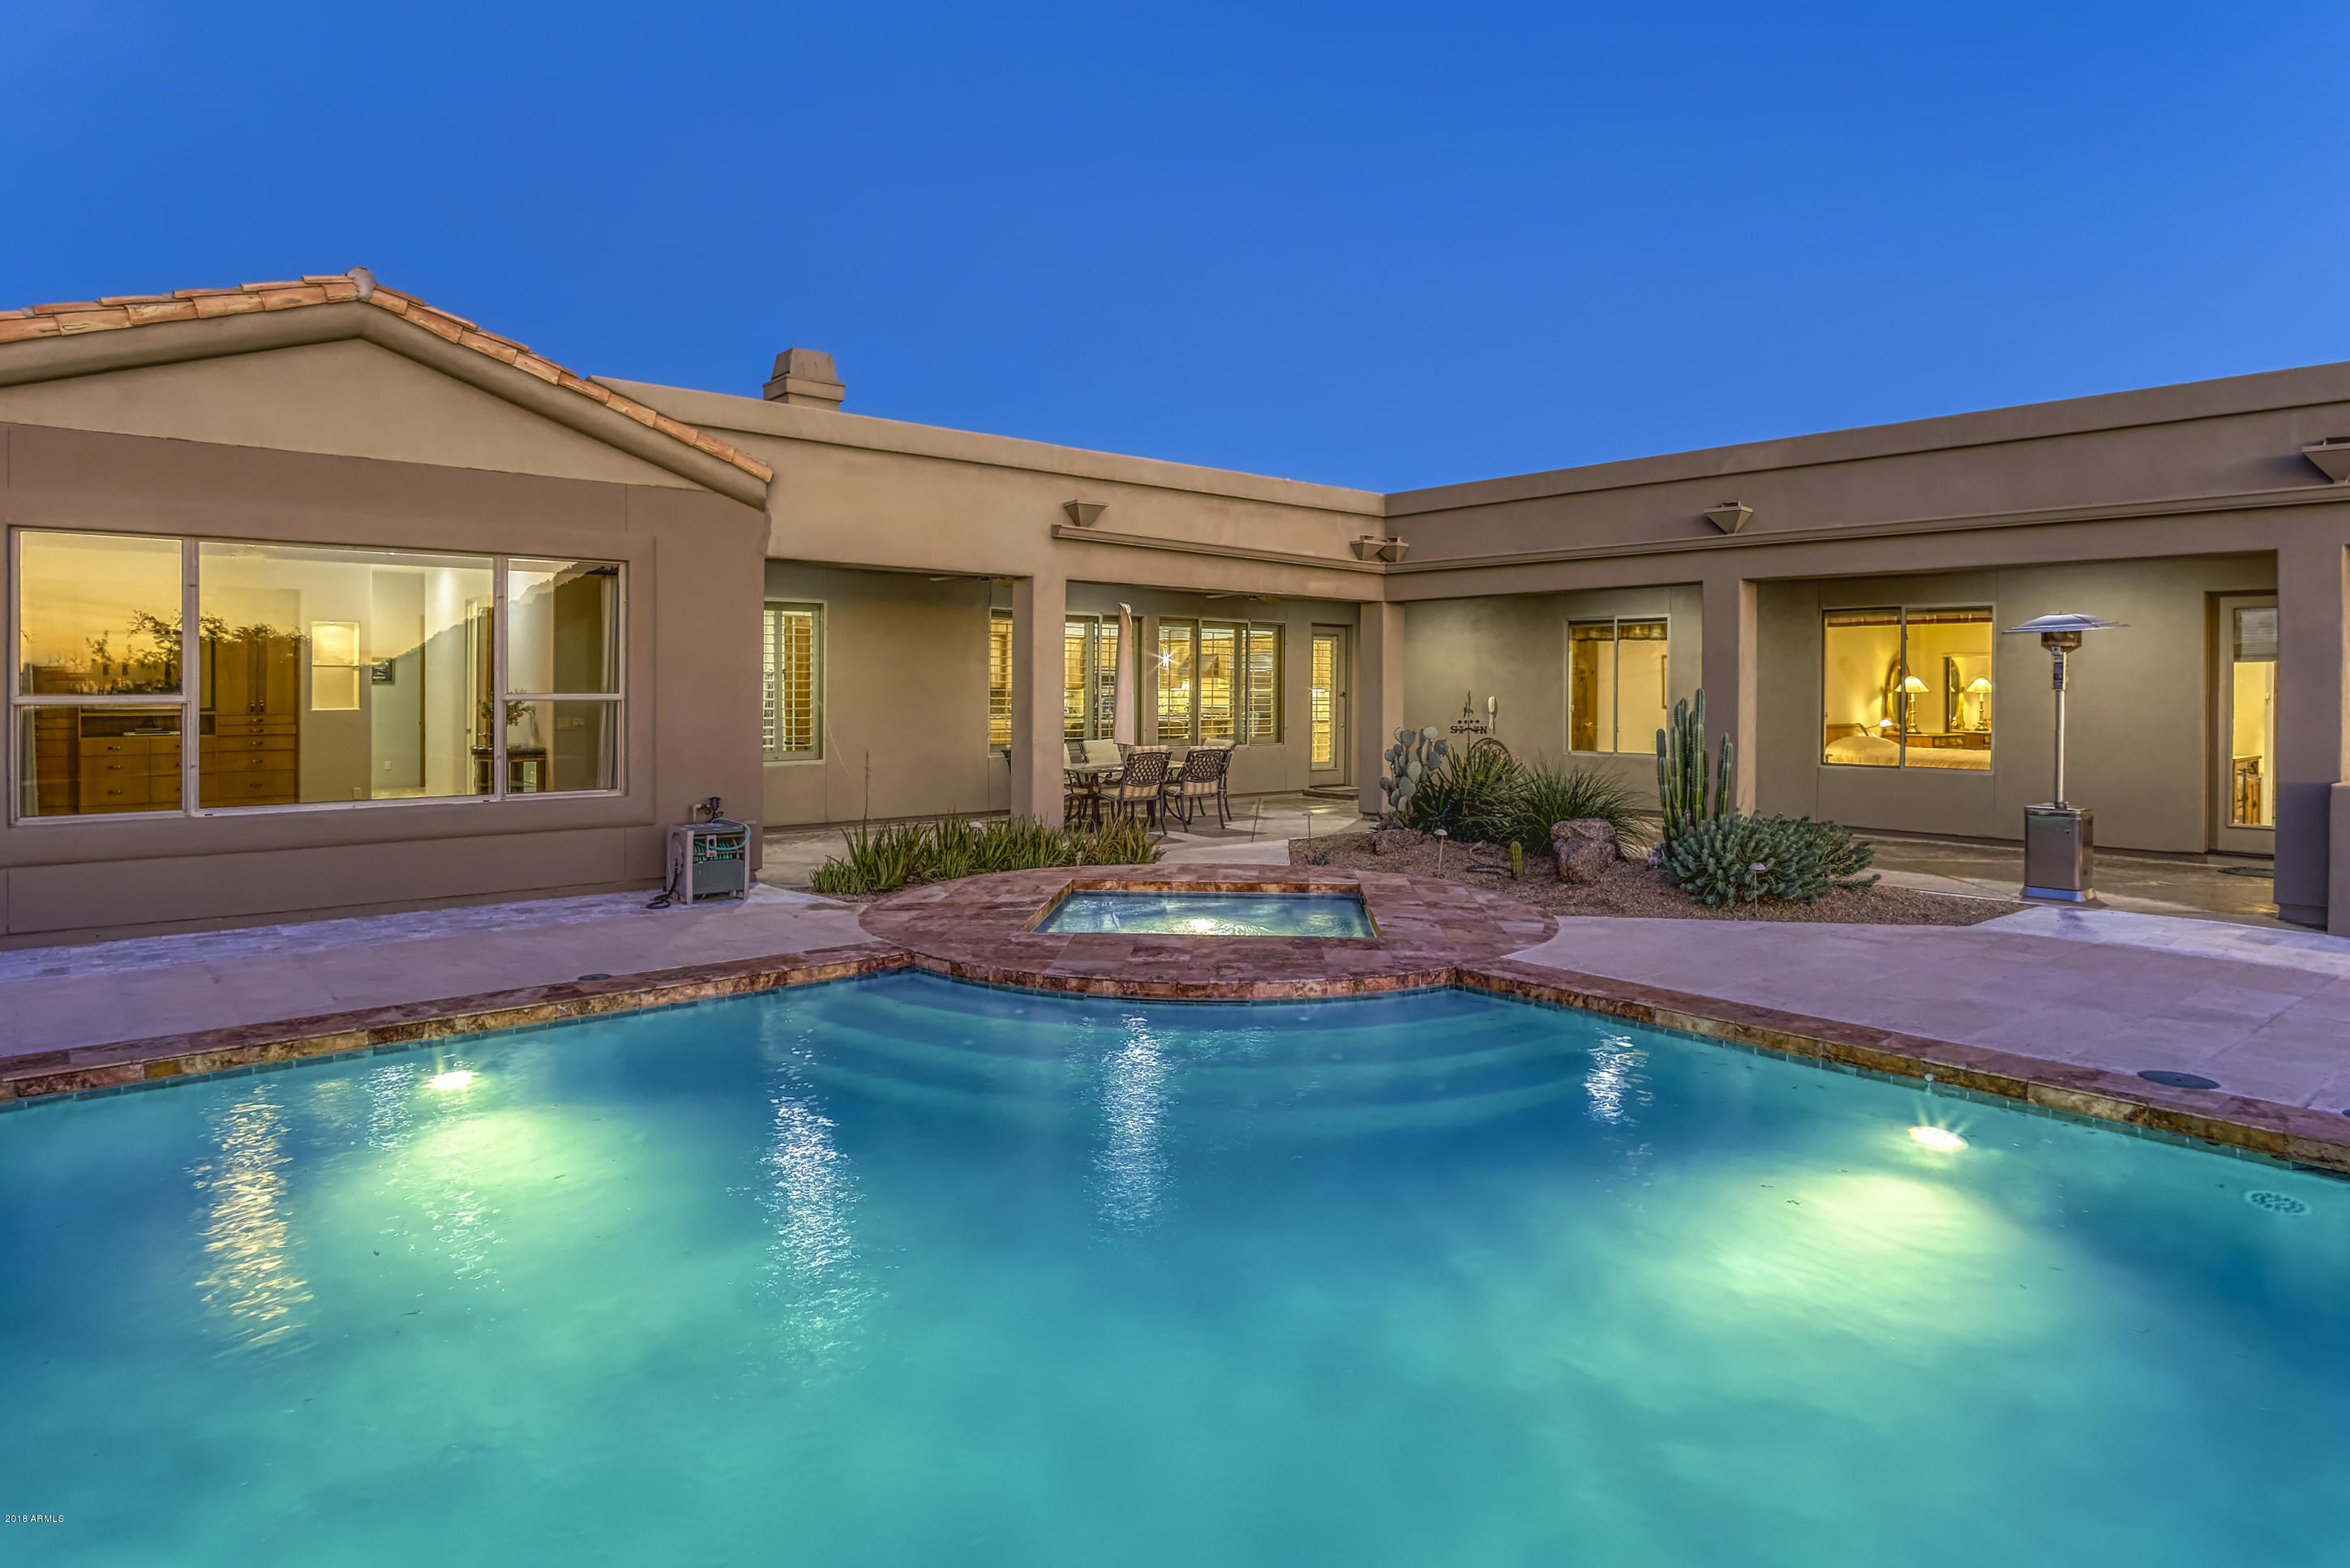 MLS 5830099 11557 E FOUR PEAKS Road, Scottsdale, AZ 85262 Scottsdale AZ Private Pool